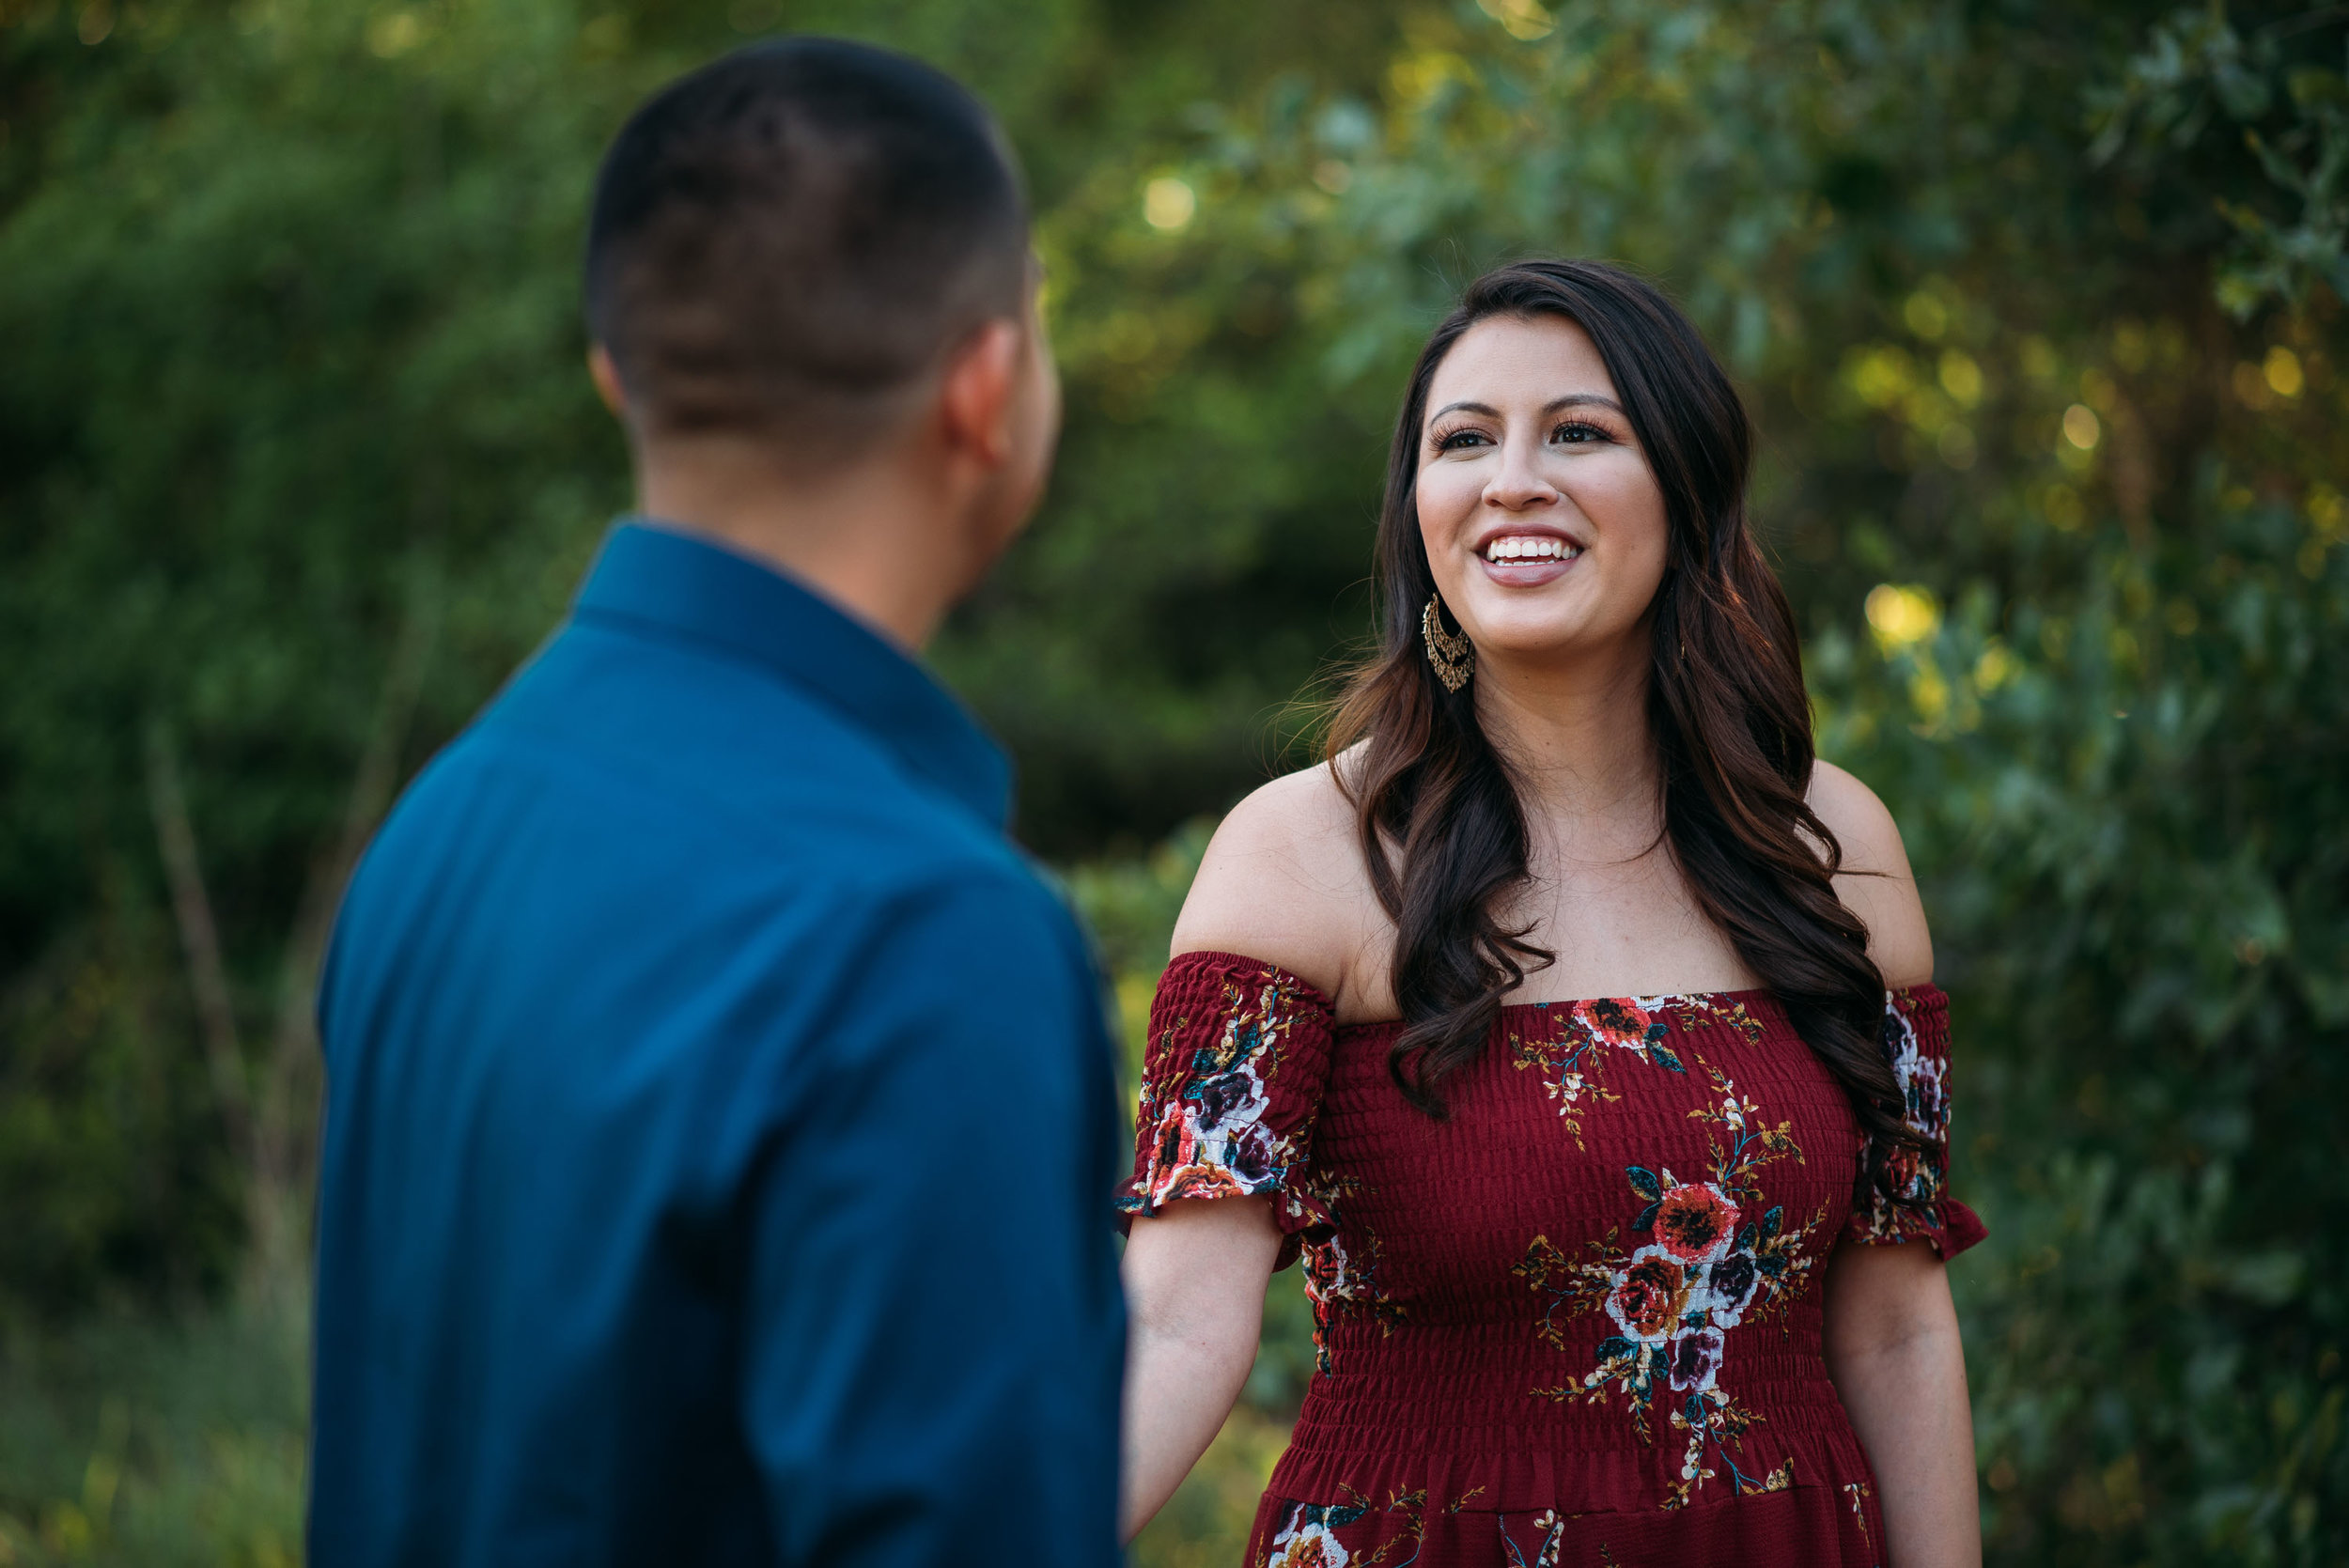 Aggie_Engagement_CollegeStation_LickCreekPark_08.jpg